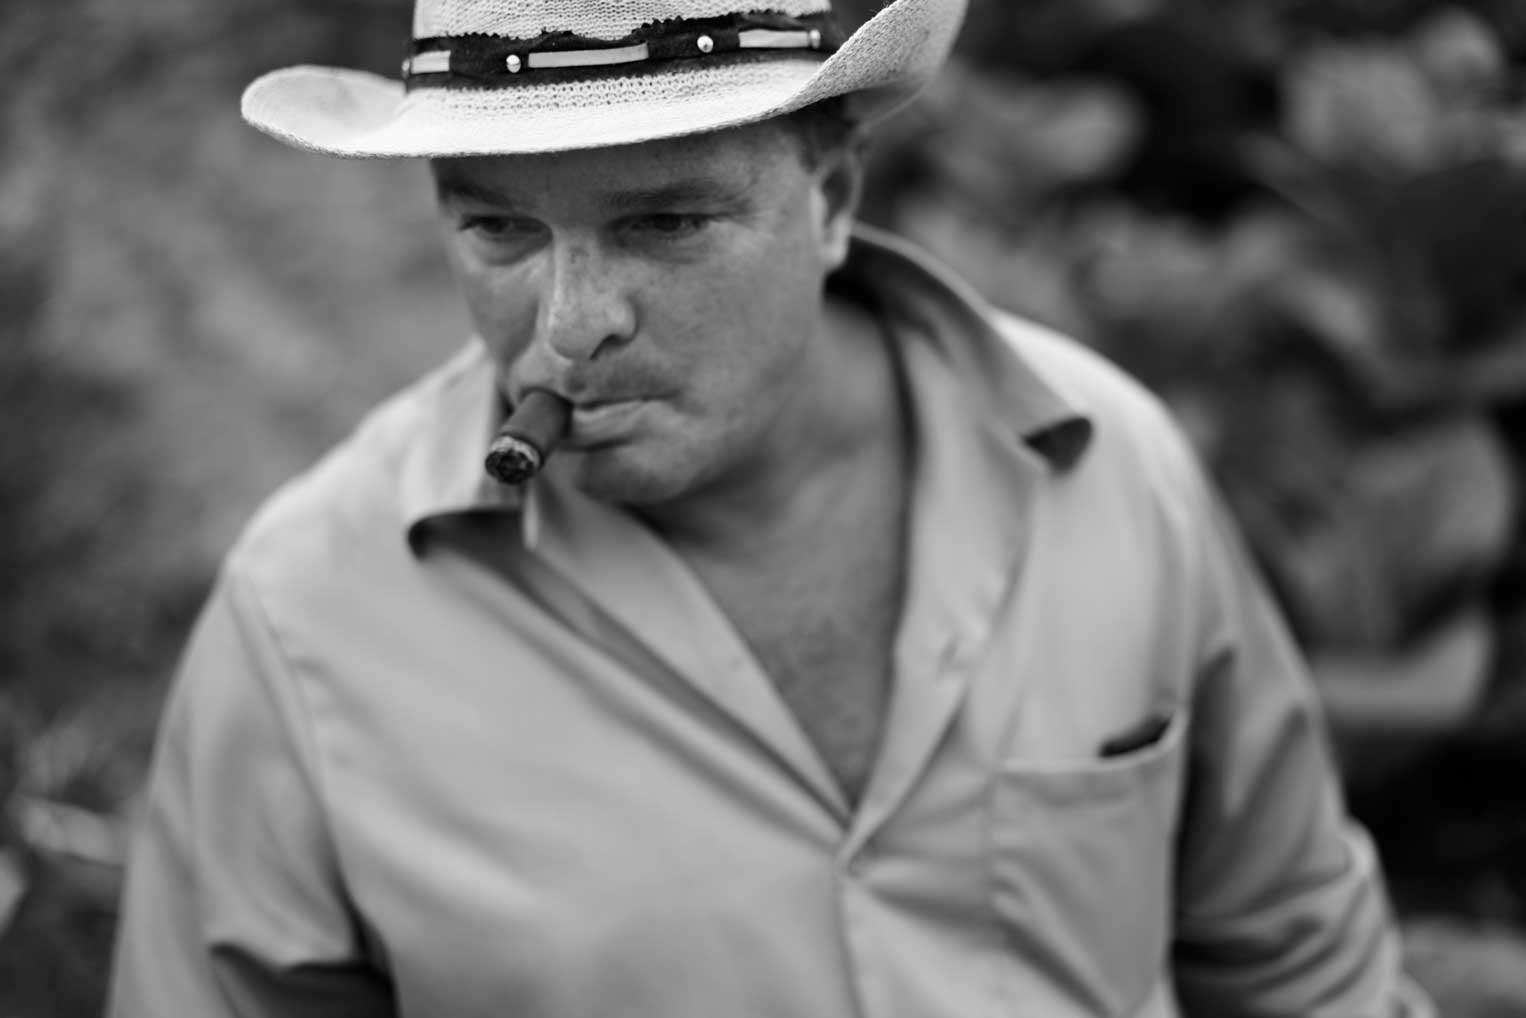 Portrait of Hector Luis Prieto Hombre Habano Tobacco Farmer | Stories + Objects Luxury Lifestyle Magazine